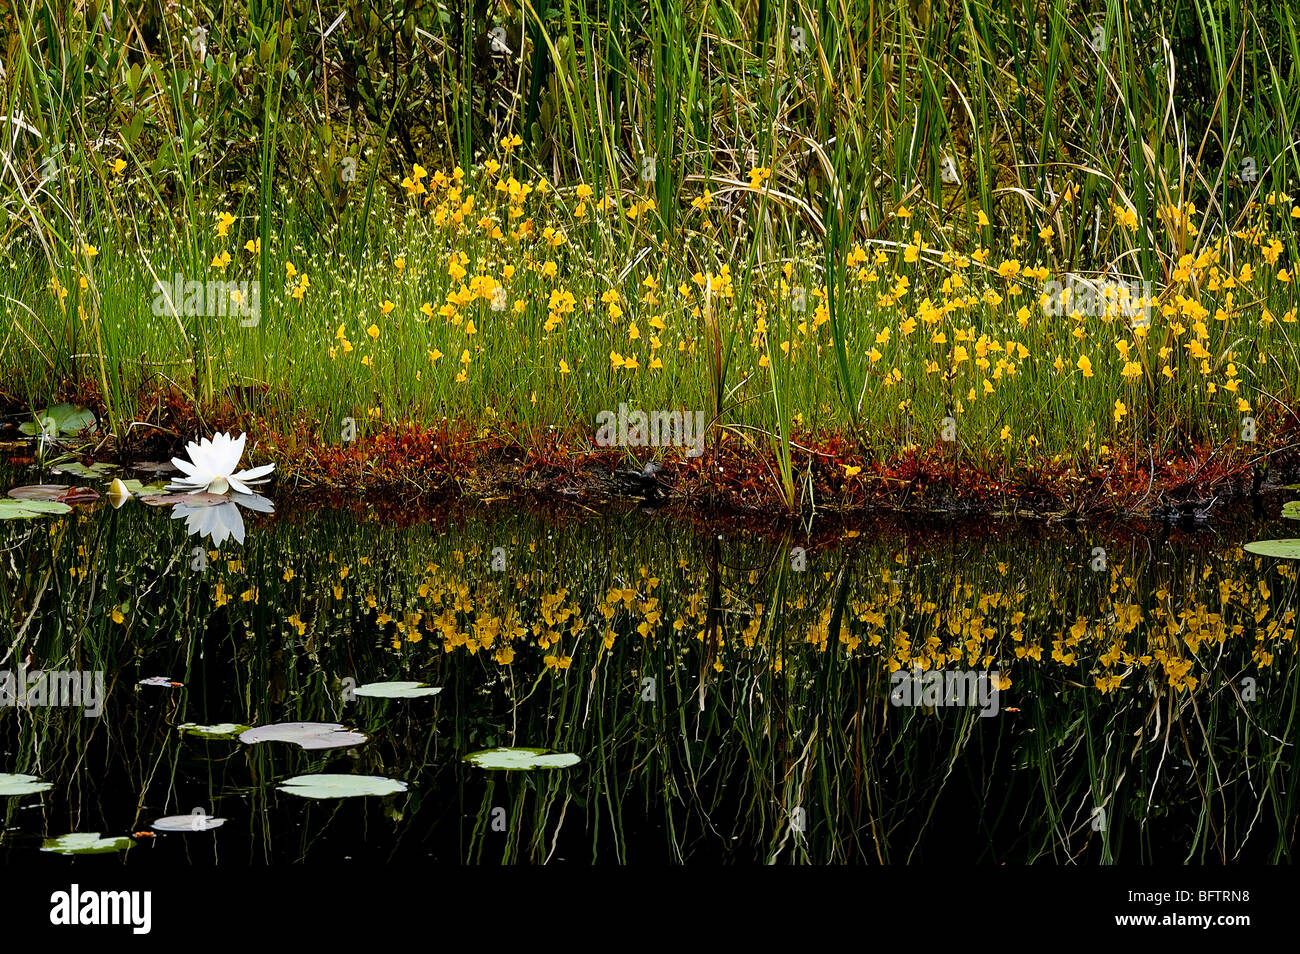 Boreal bog with flowering bladderwort and fragrant white water lilies, Greater Sudbury, Ontario, Canada - Stock Image